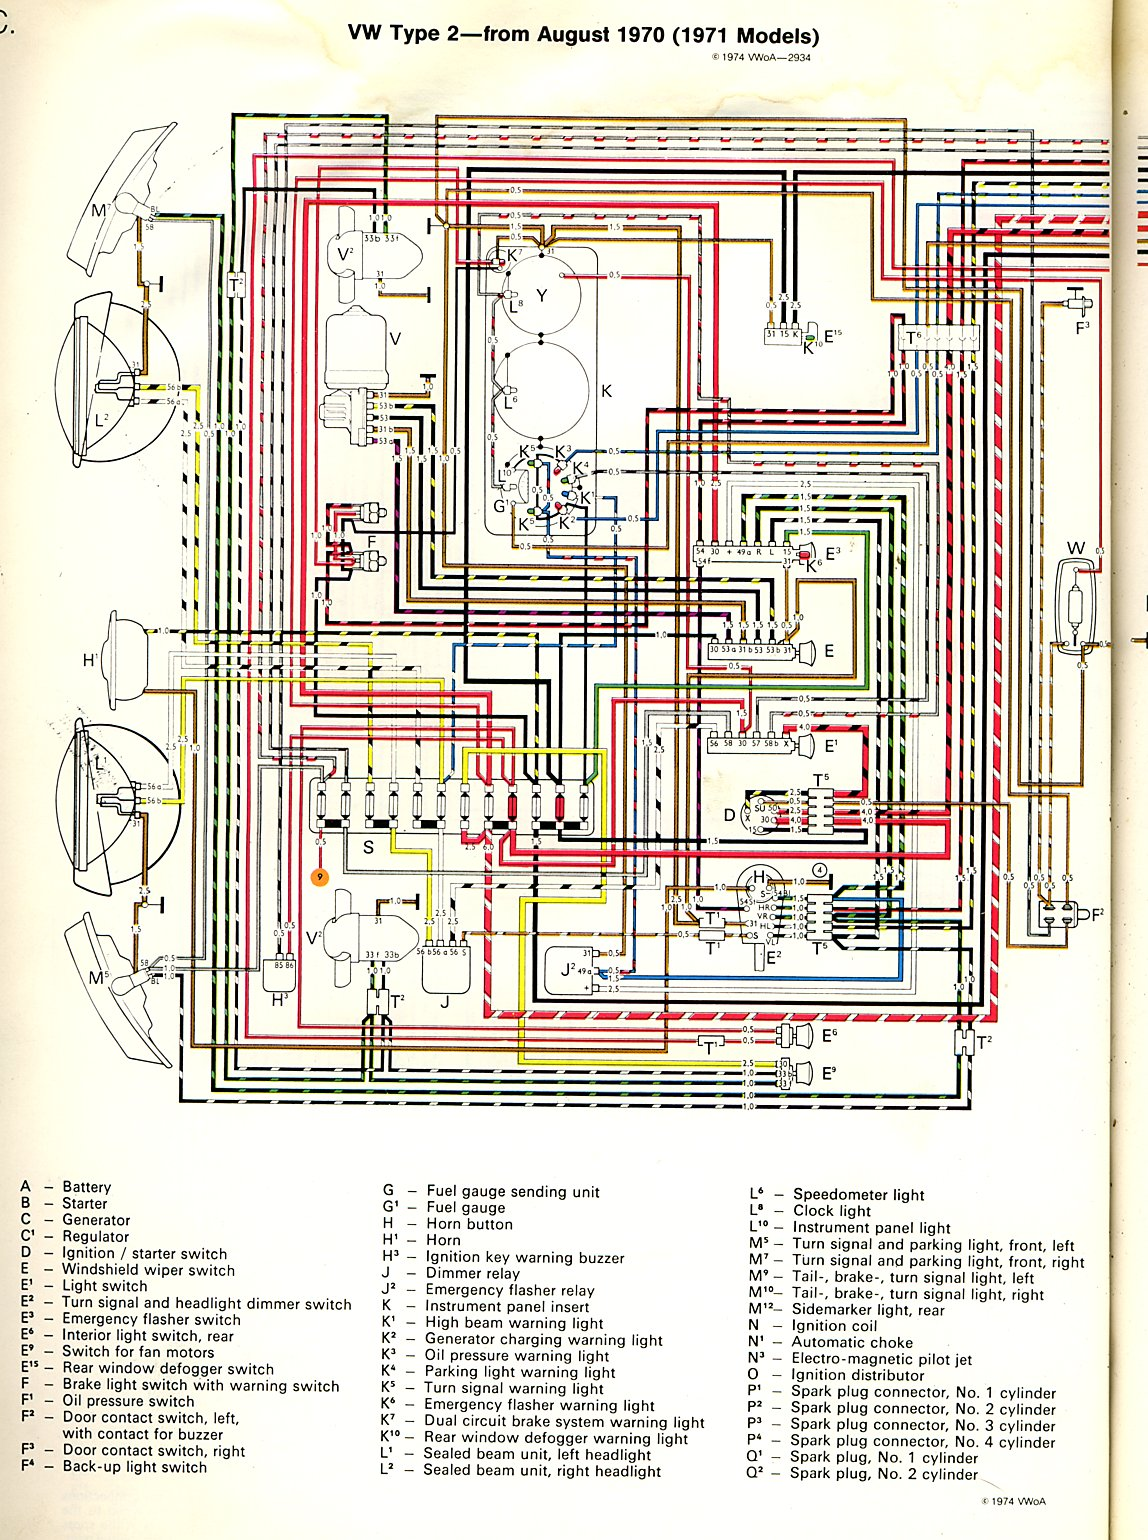 73 vw bus wiring diagrams wiring diagram database 1972 super beetle wiring diagram thesamba com type 2 wiring diagrams 1967 vw beetle wiring diagram